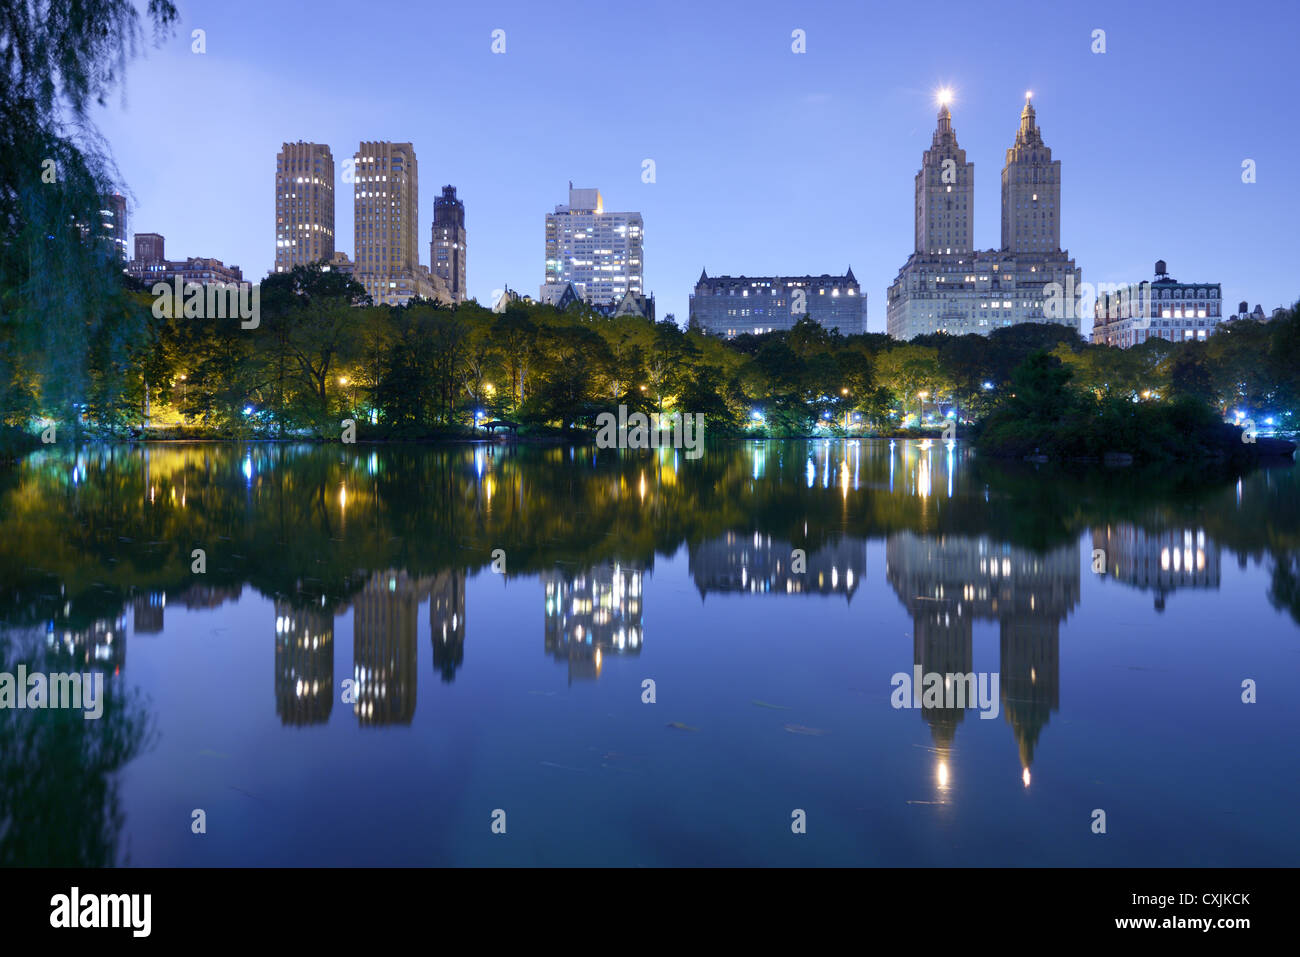 The Lake in New York City's Central Park - Stock Image